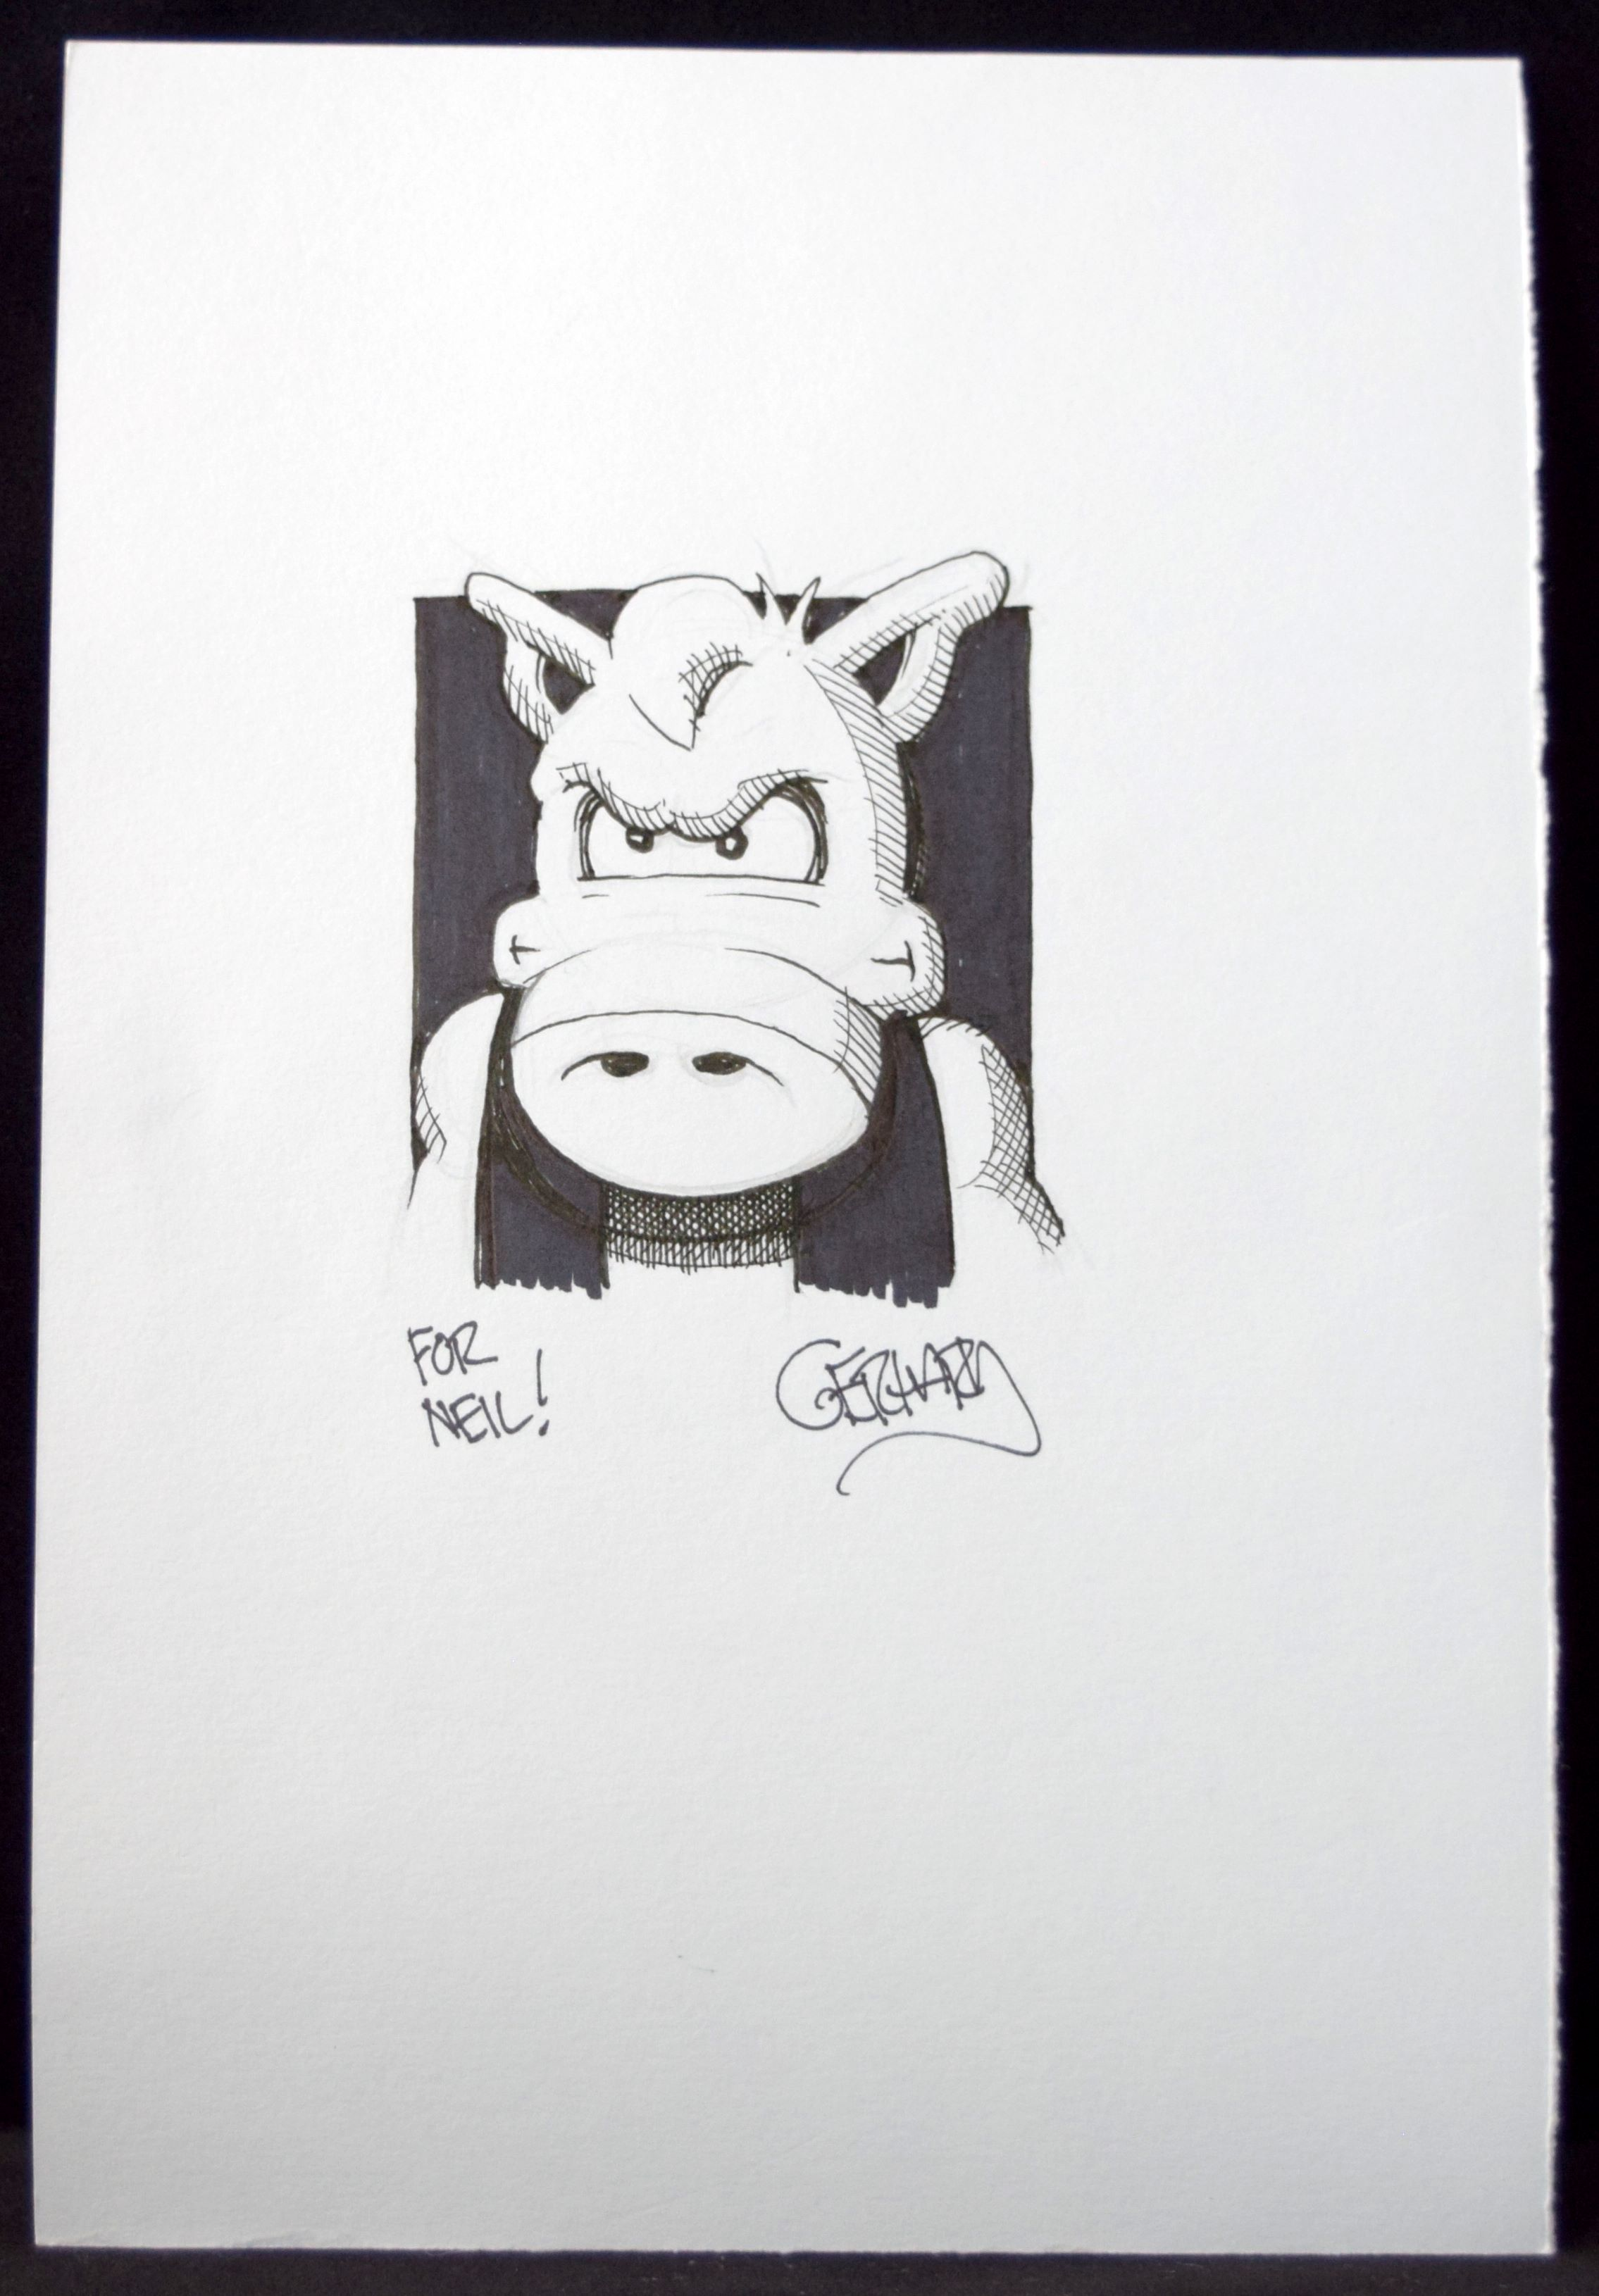 A commission of Cerebus from Gerhard.